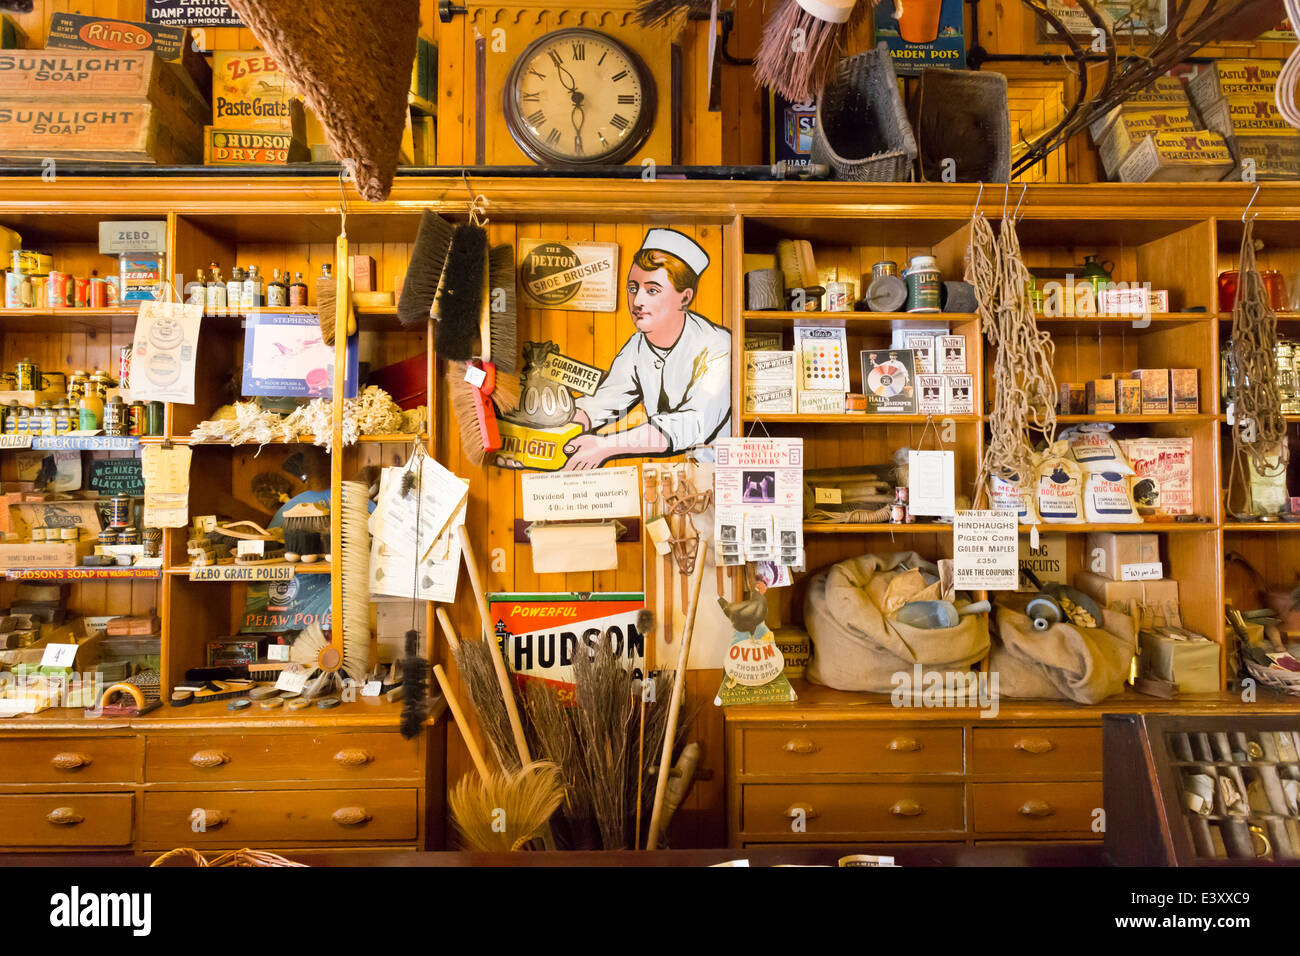 Old fashioned hardware stores 8